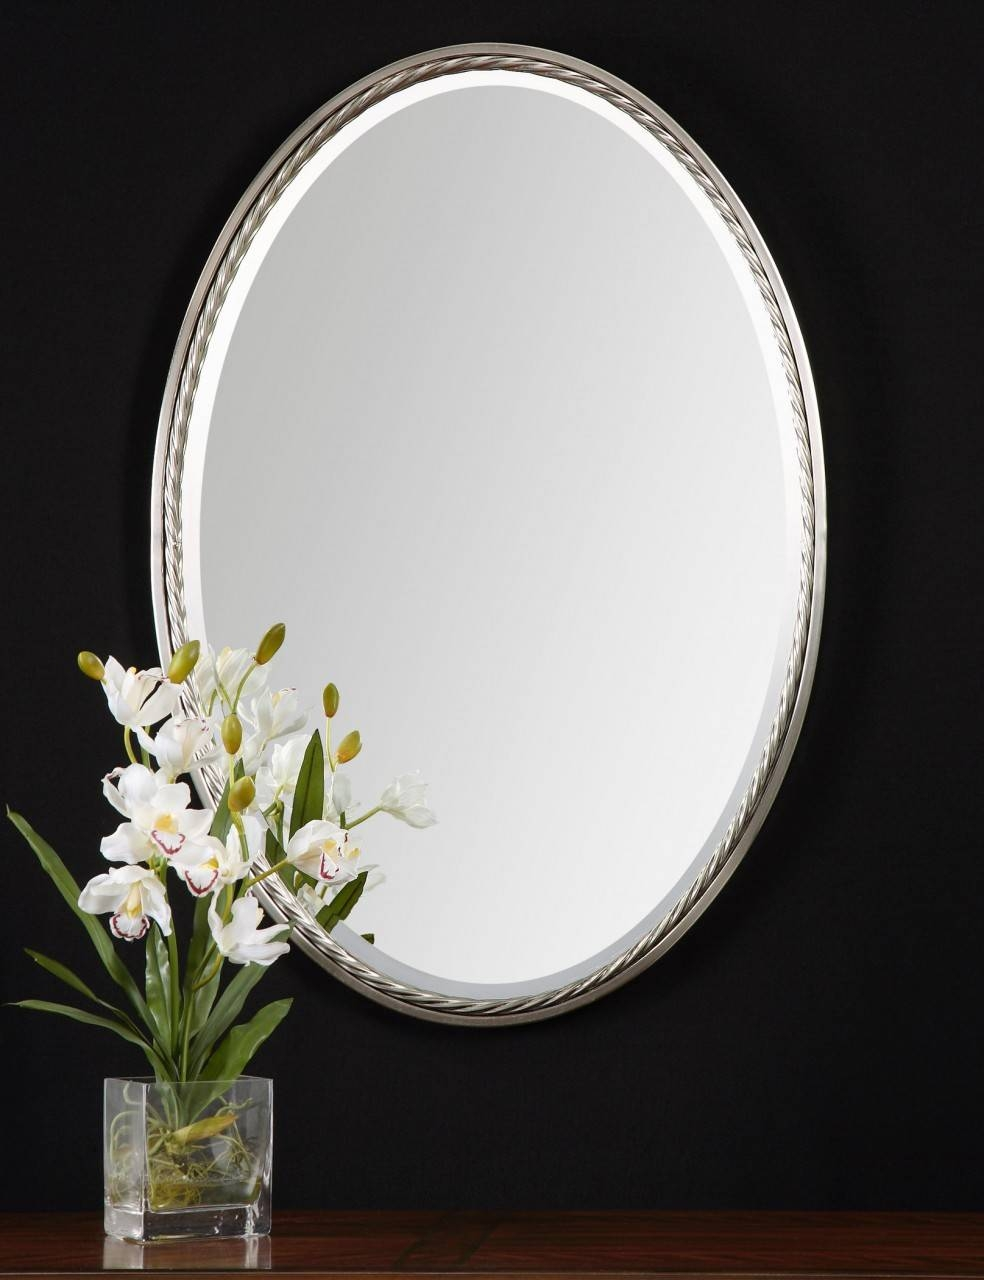 Bathroom Wall Mirrors Brushed Nickel 107 Breathtaking Decor Plus Regarding Oval Mirrors For Walls (View 23 of 25)